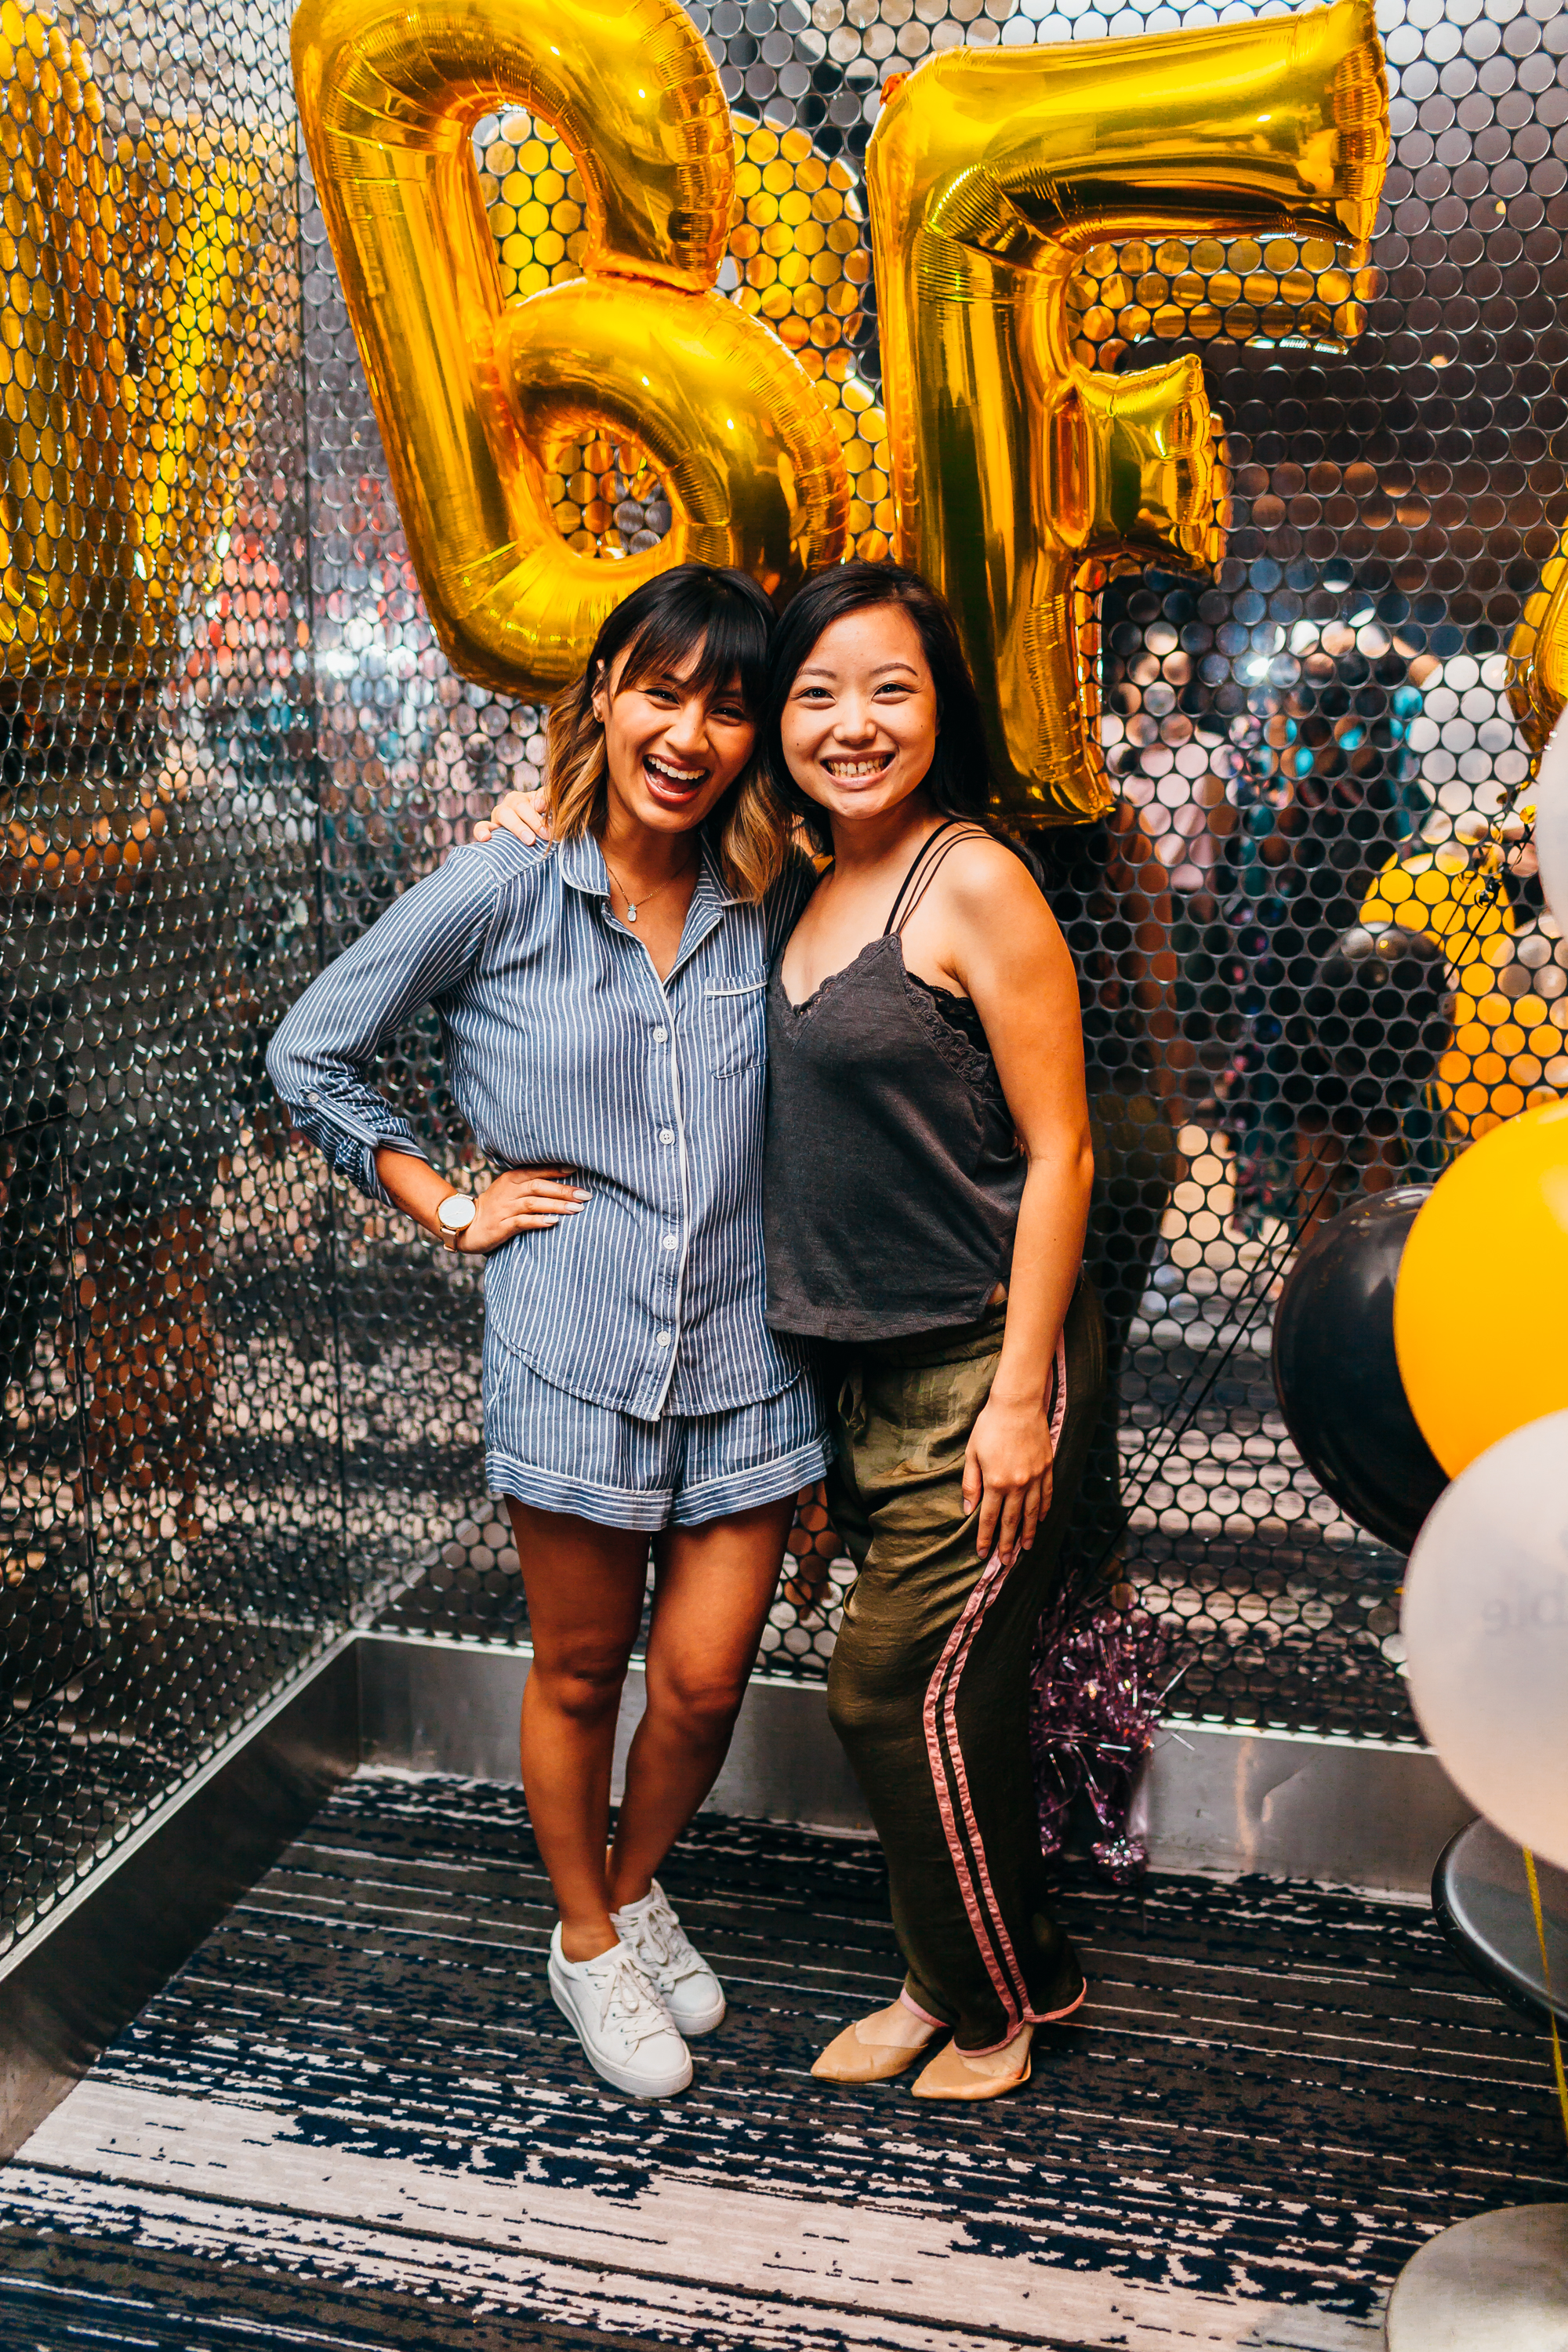 bumble-bff-dallas-launch-event-6526.jpg